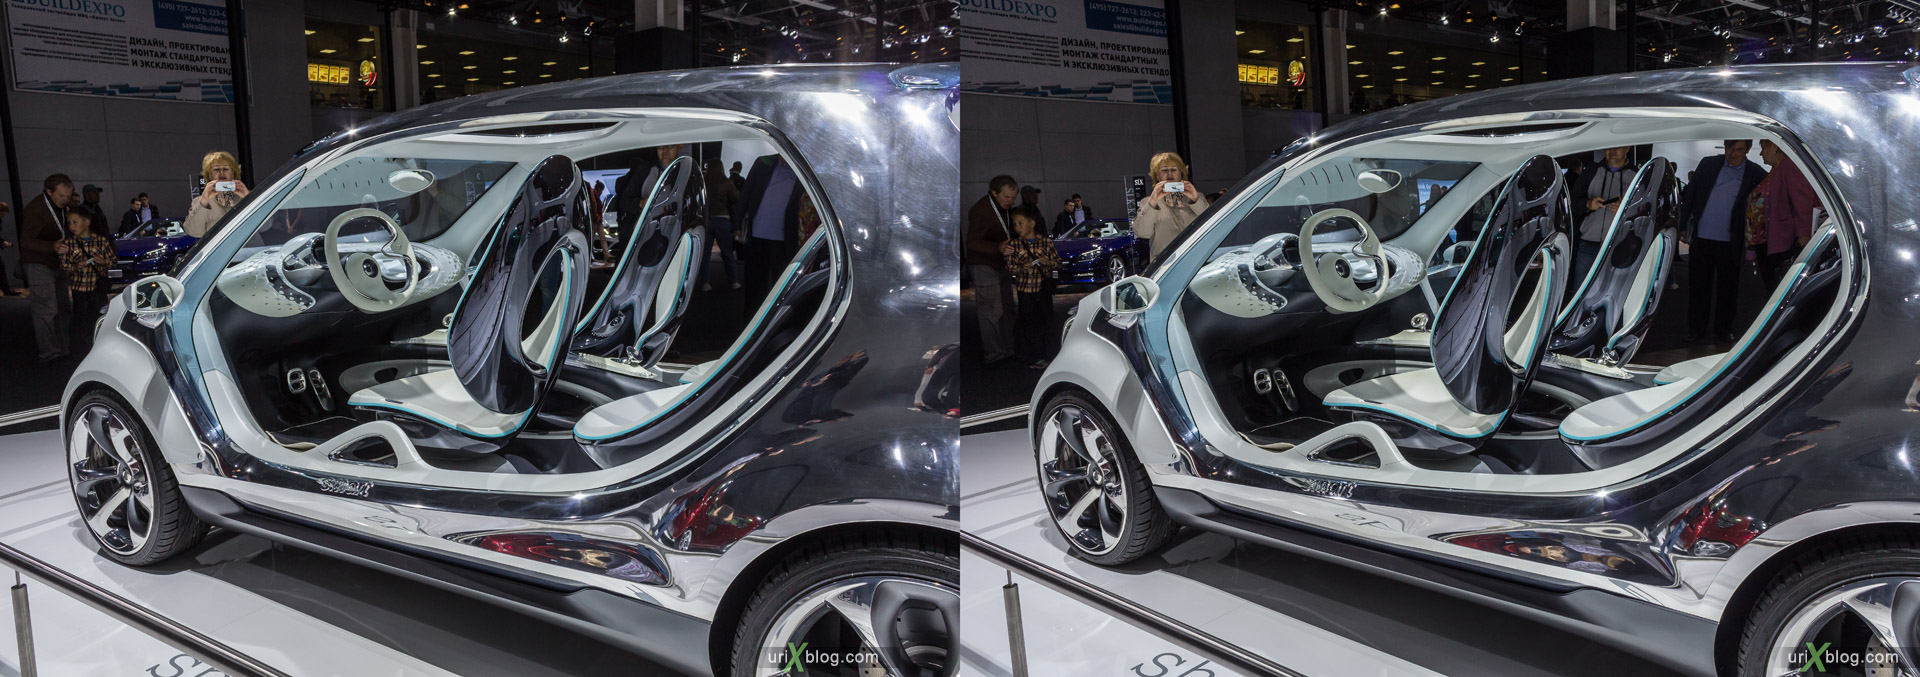 2014, smart, Moscow International Automobile Salon, MIAS, Crocus Expo, Moscow, Russia, augest, 3D, stereo pair, cross-eyed, crossview, cross view stereo pair, stereoscopic